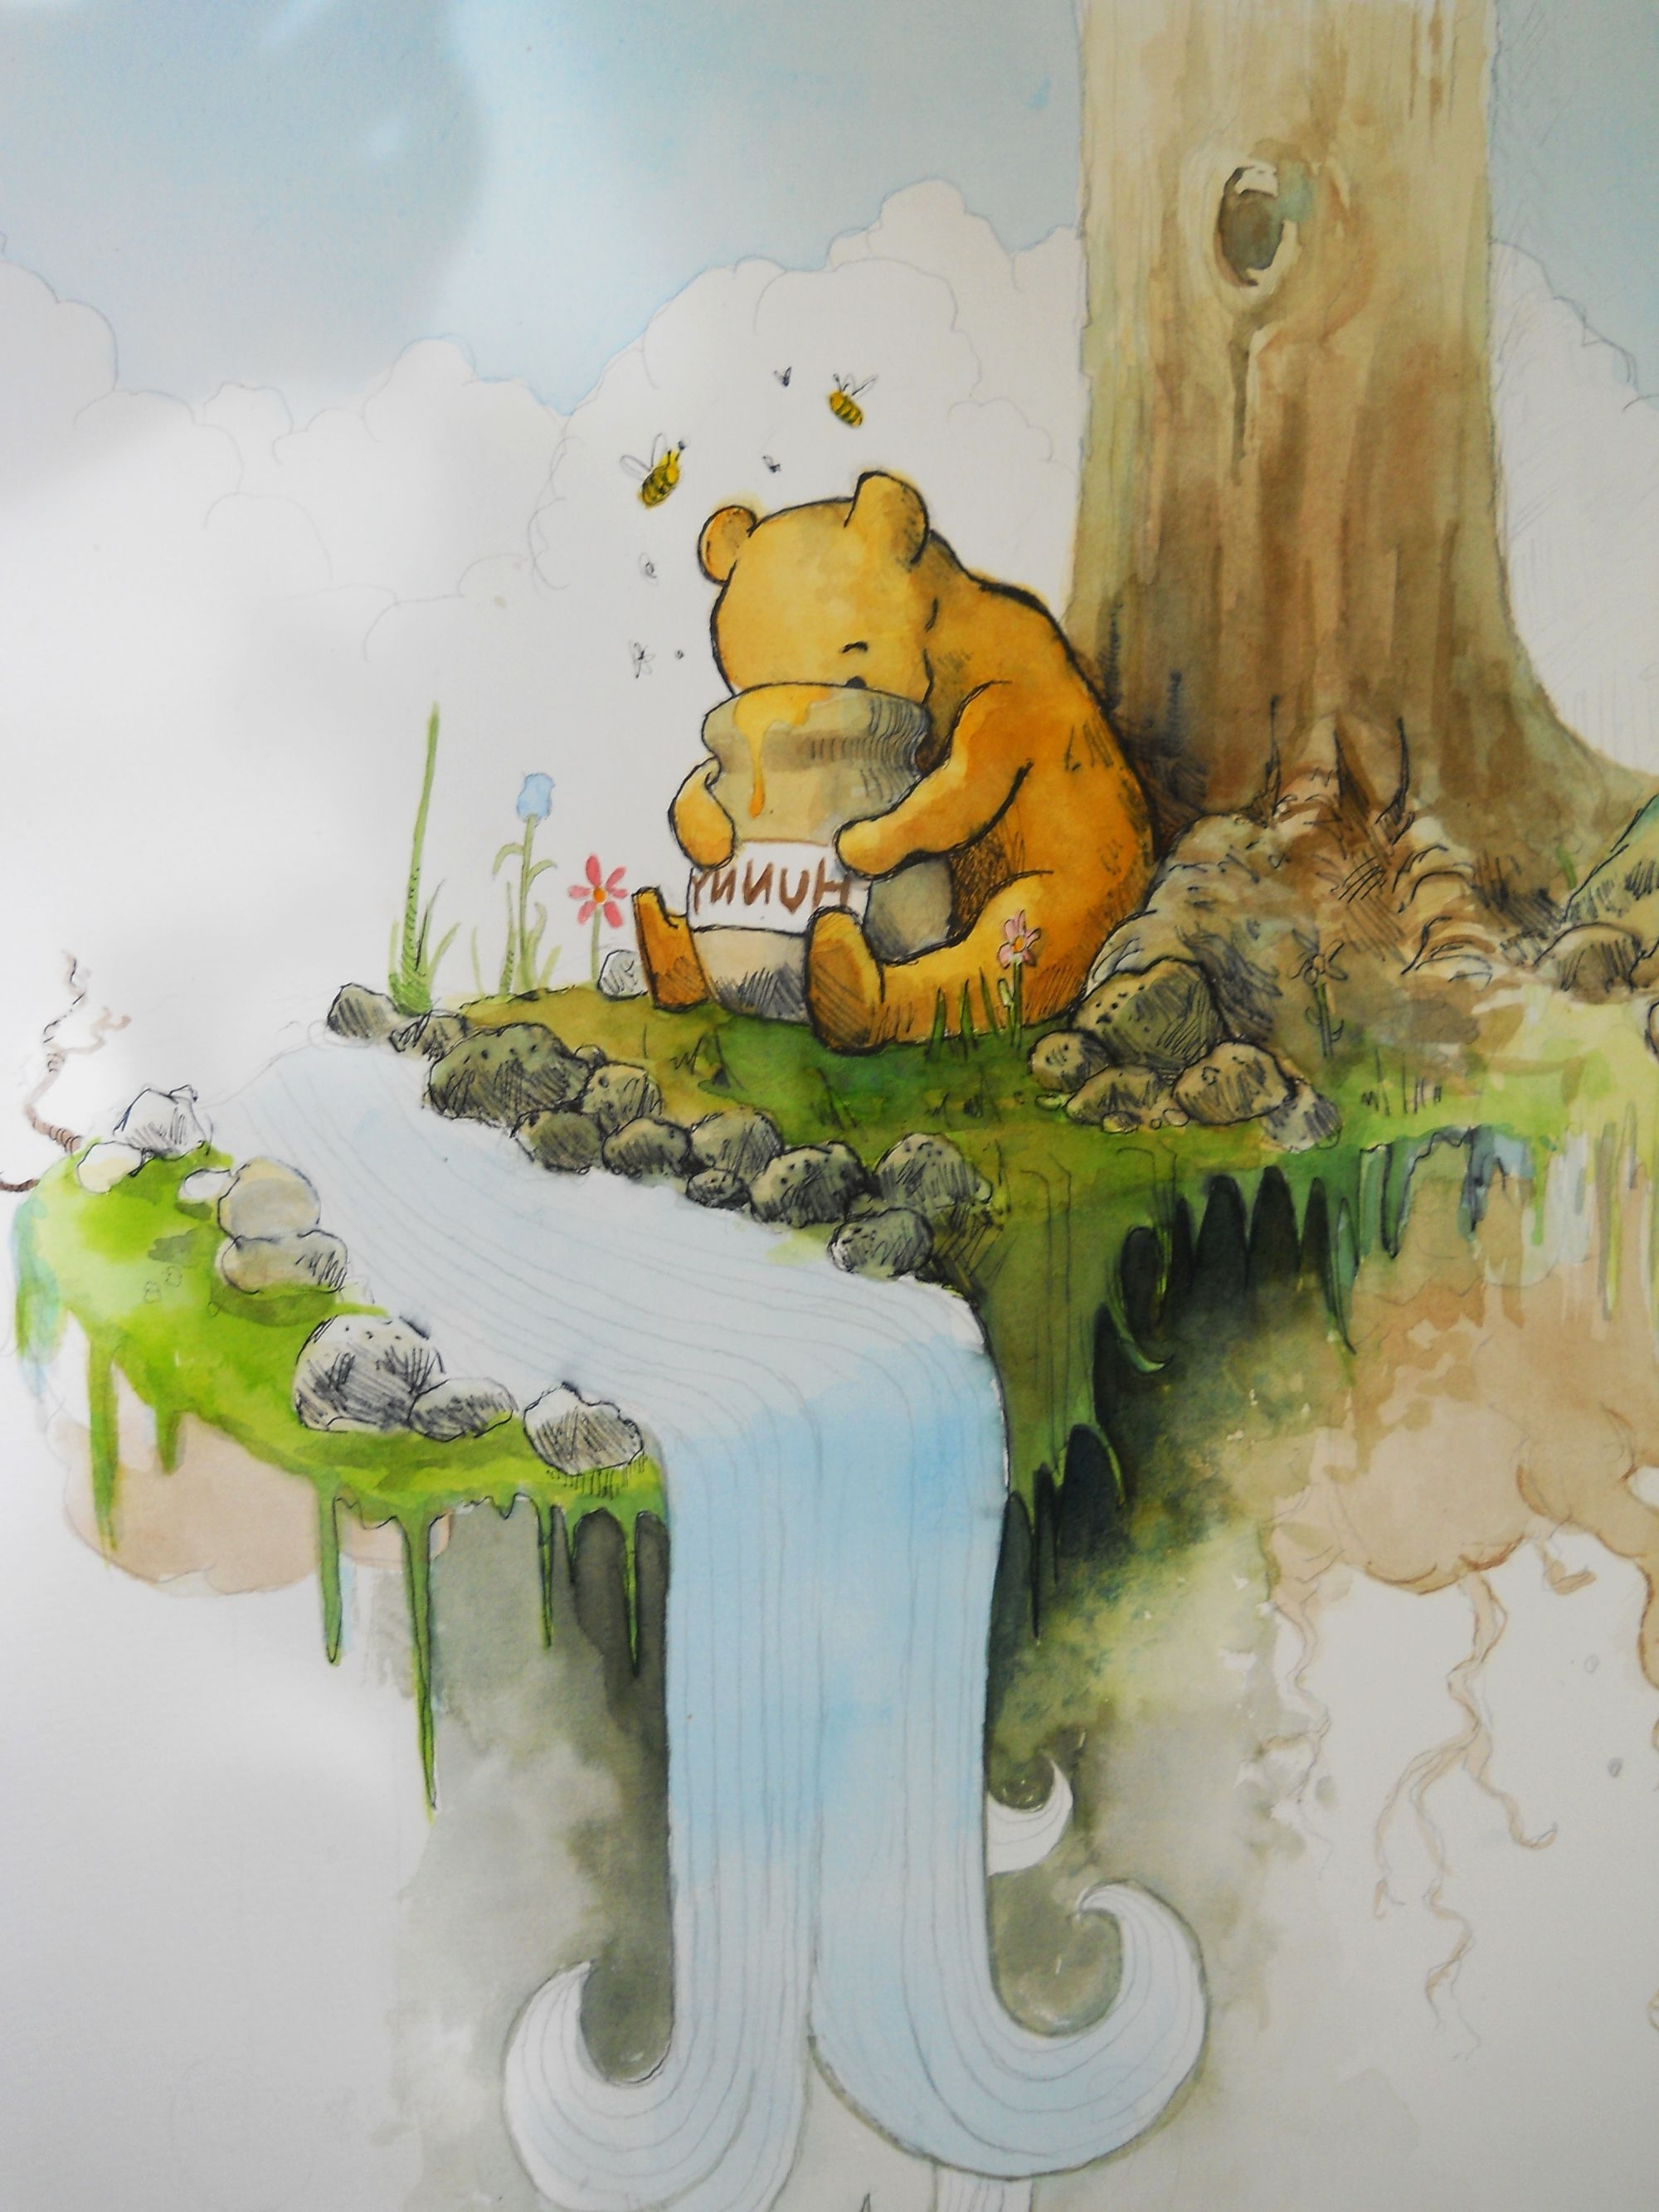 2018 Winnie The Poohoswalddent On Deviantart Throughout Classic Pooh Art (View 1 of 15)